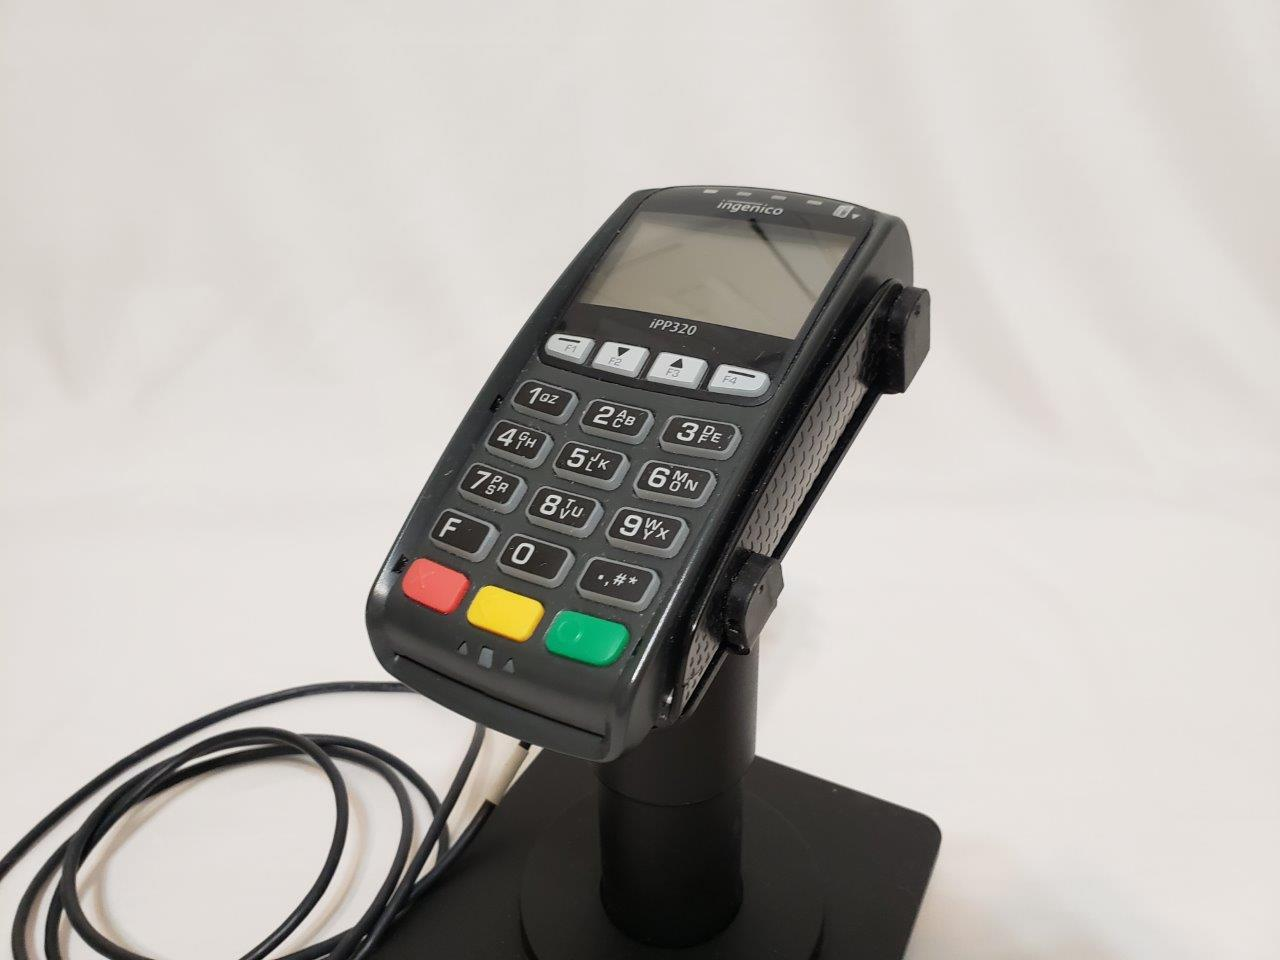 Ingenico iPP320 Debit Credit Card POS Retail Terminal w Chip Reader IPP320-11T2390A